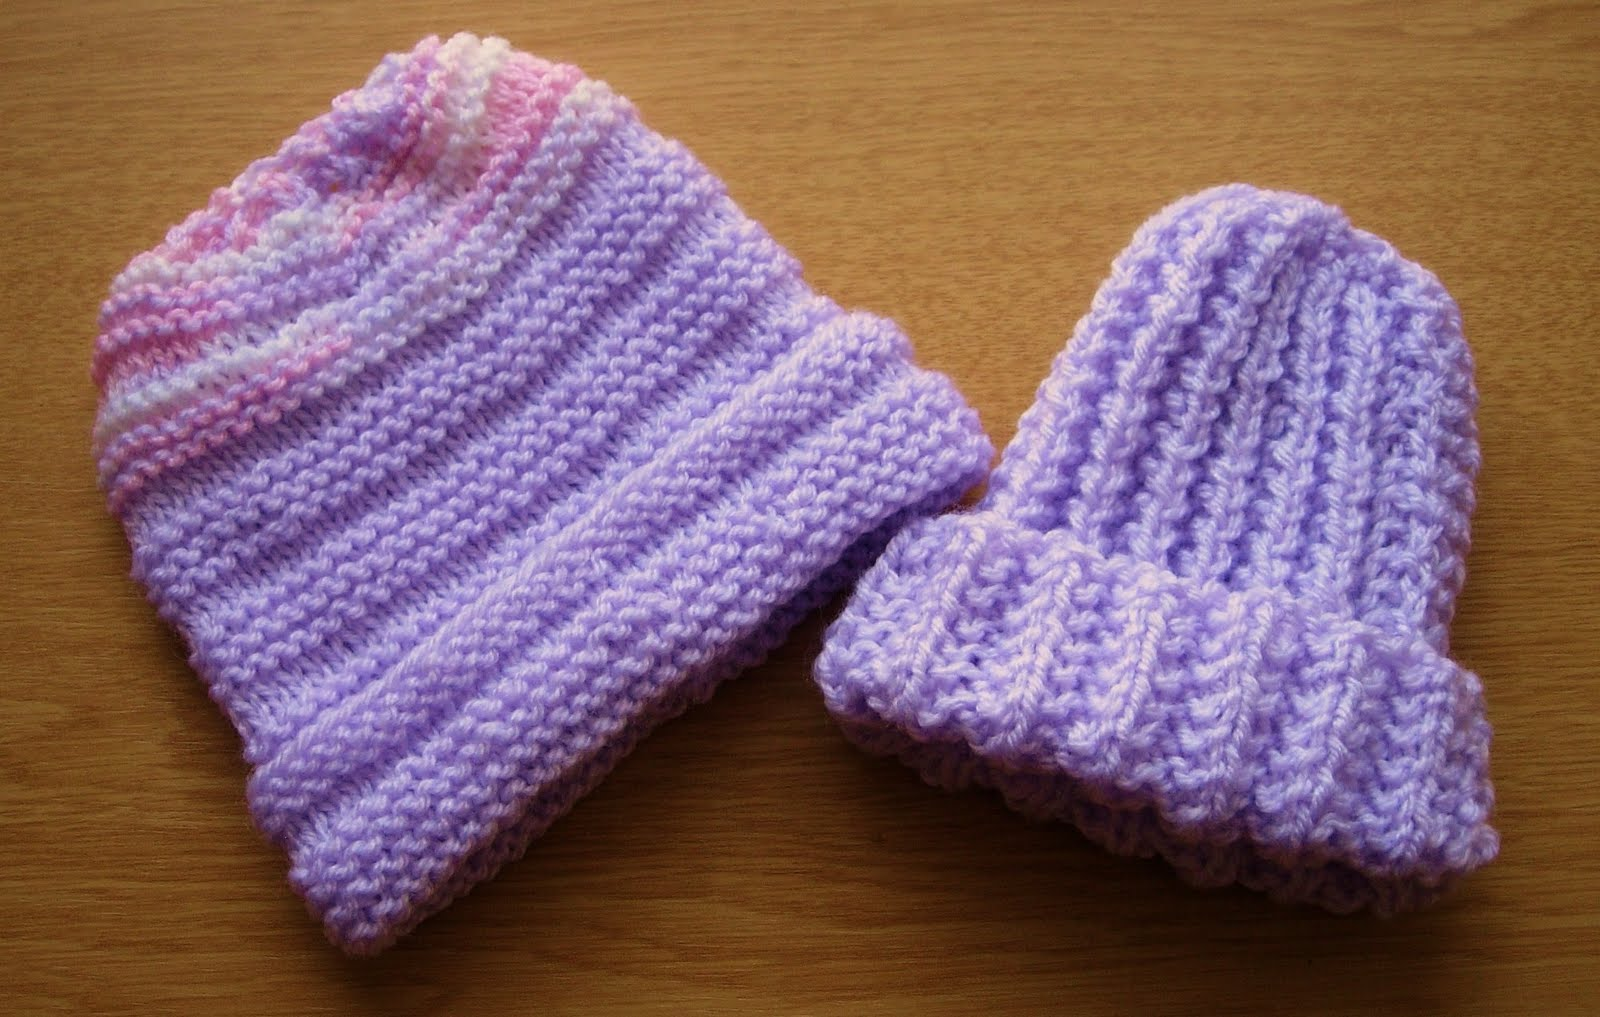 knitting baby hat pattern | eBay - Electronics, Cars, Fashion